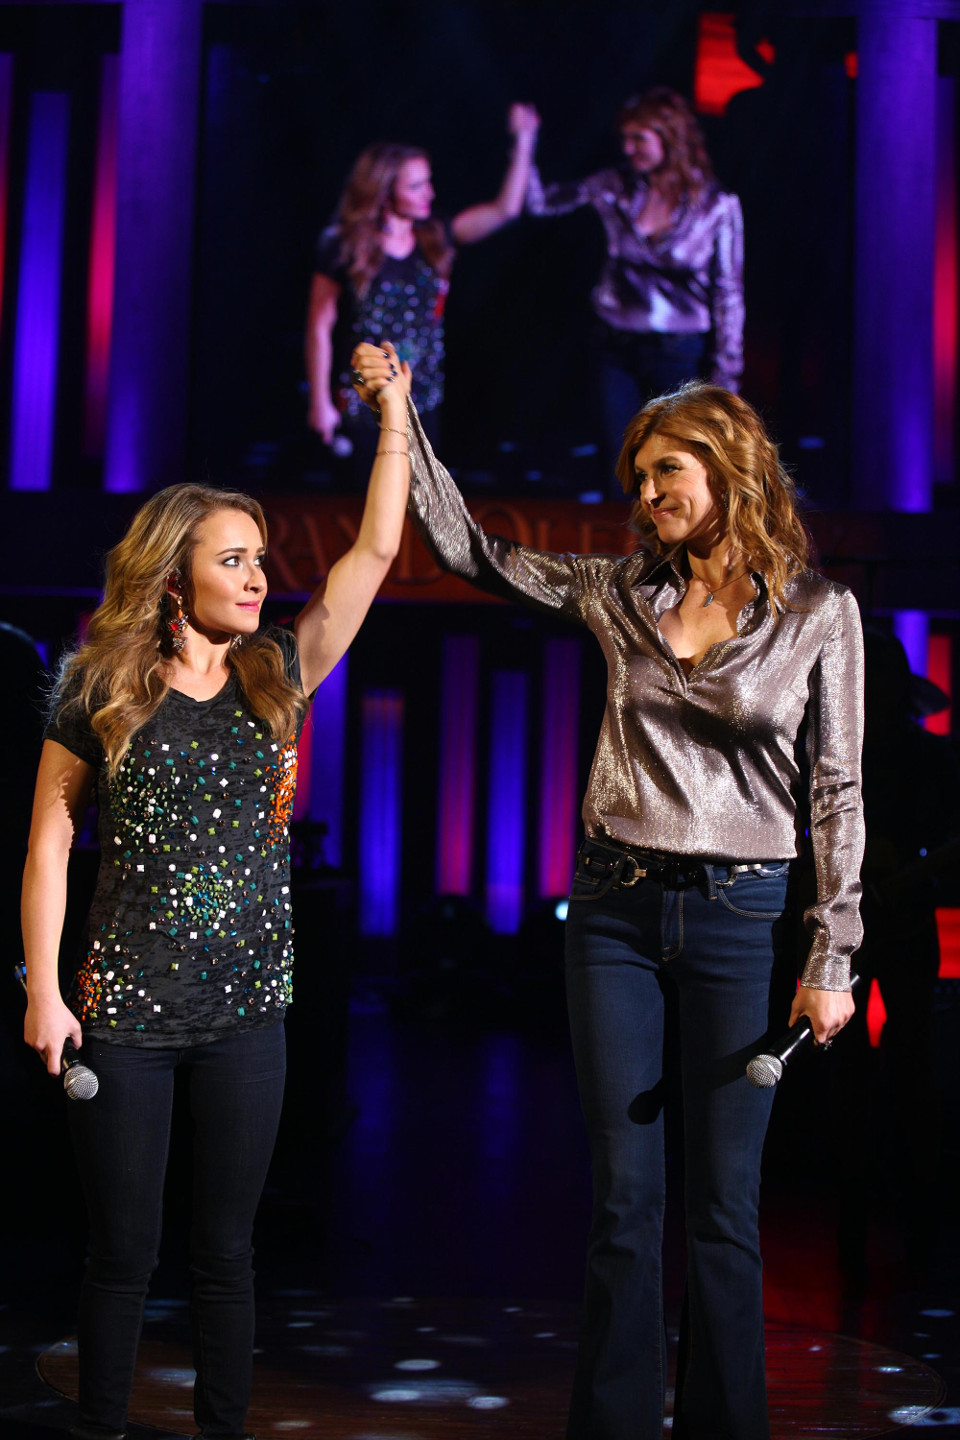 Nashville series 2: episode 17 – We've Got Things to do